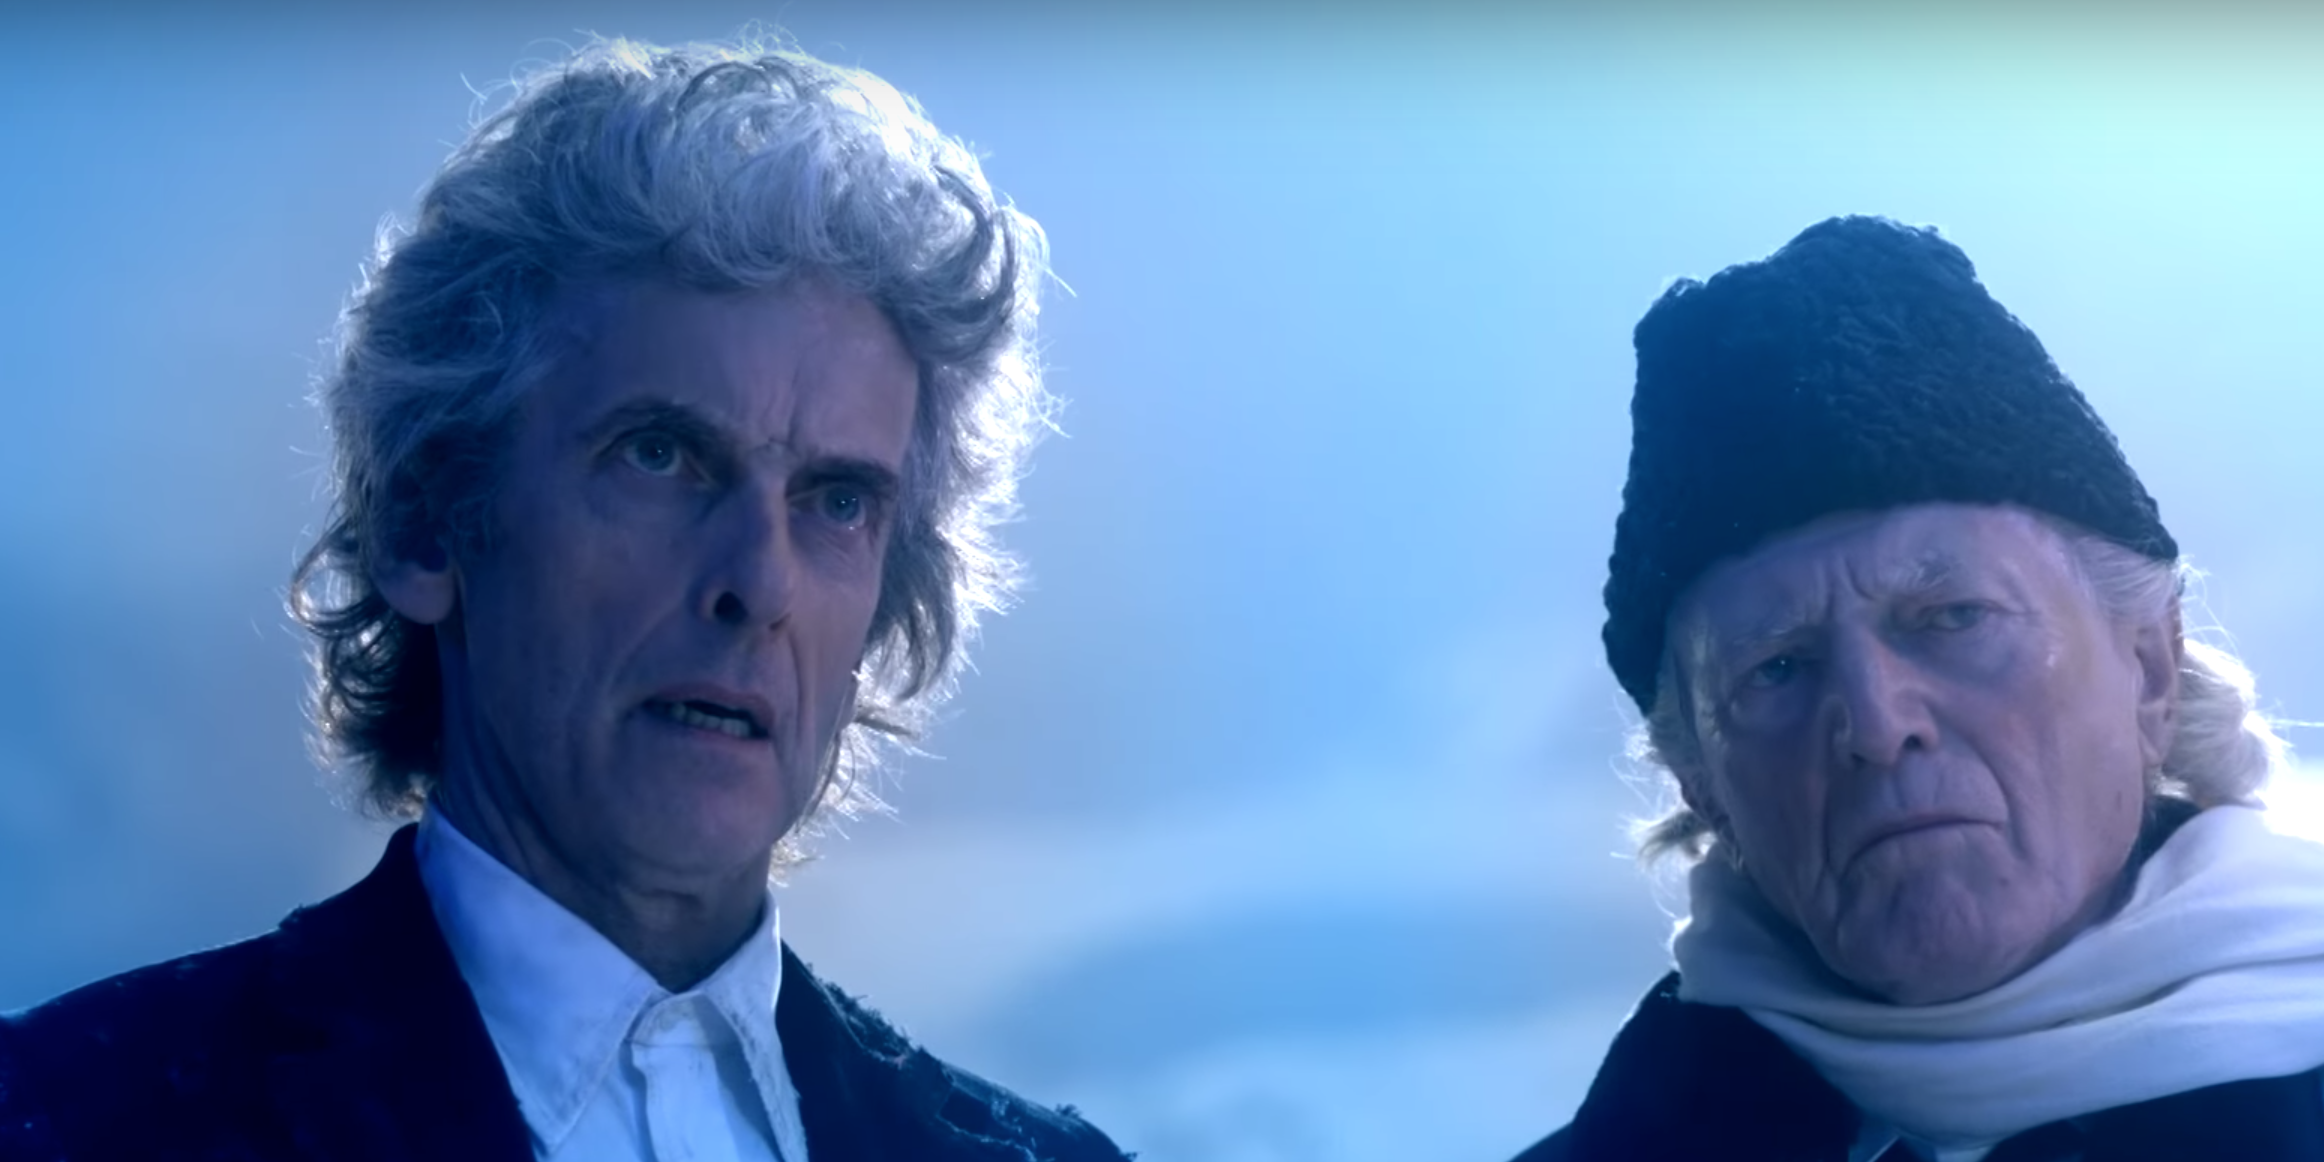 Doctor Who 2017 Christmas special: Peter Capaldi and David Bradley